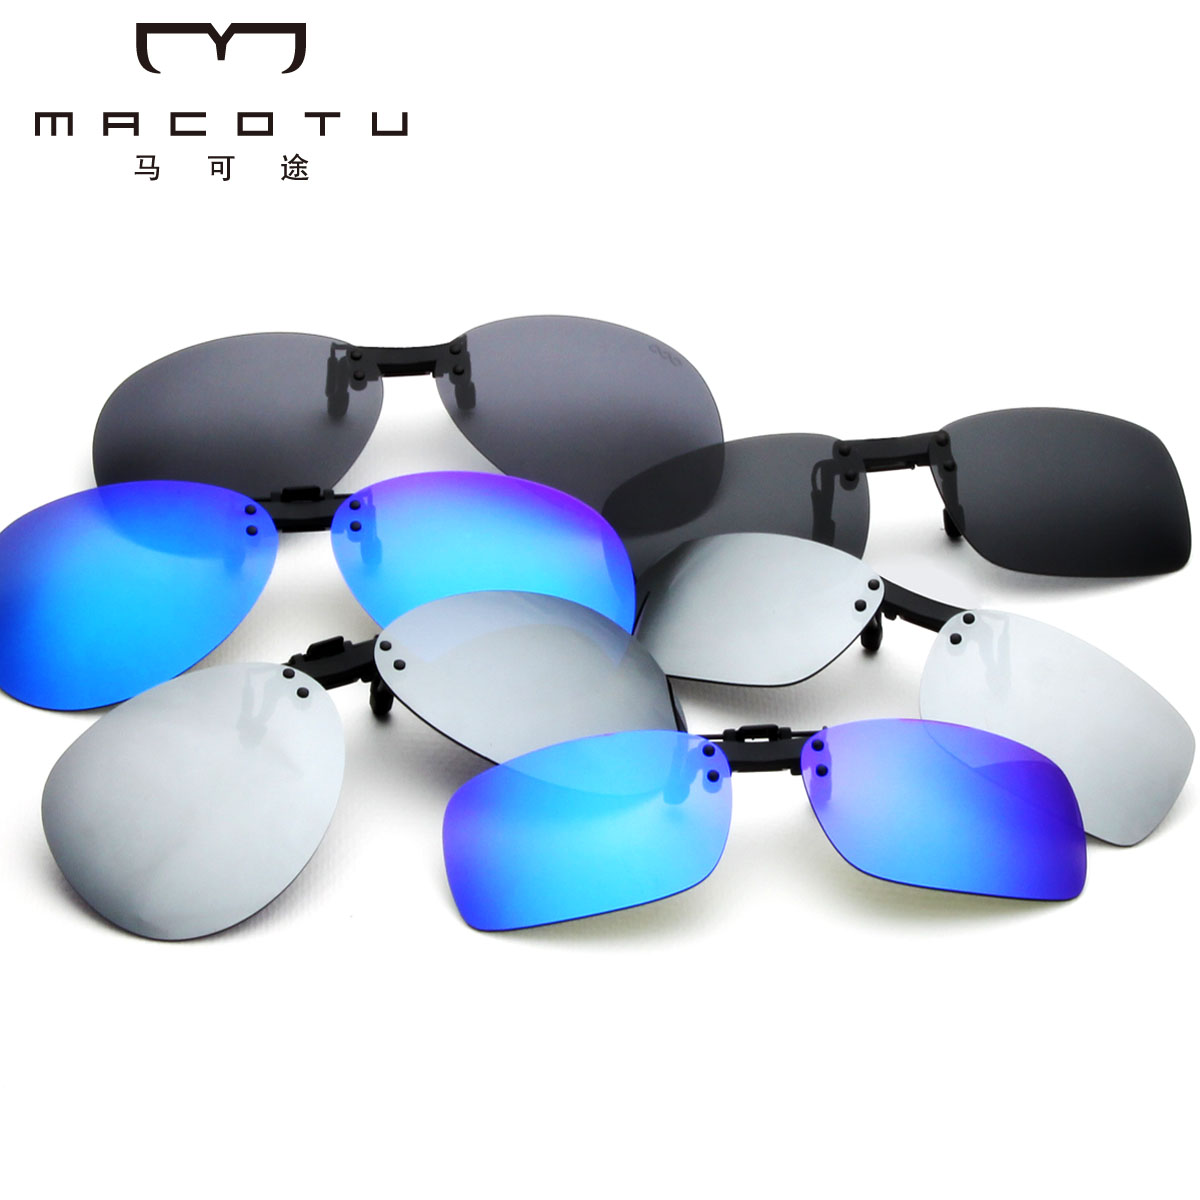 Macotu sleeve tide men and women sunglasses yurt polarized clip myopia sunglasses sunglasses clip night vision driving division machine